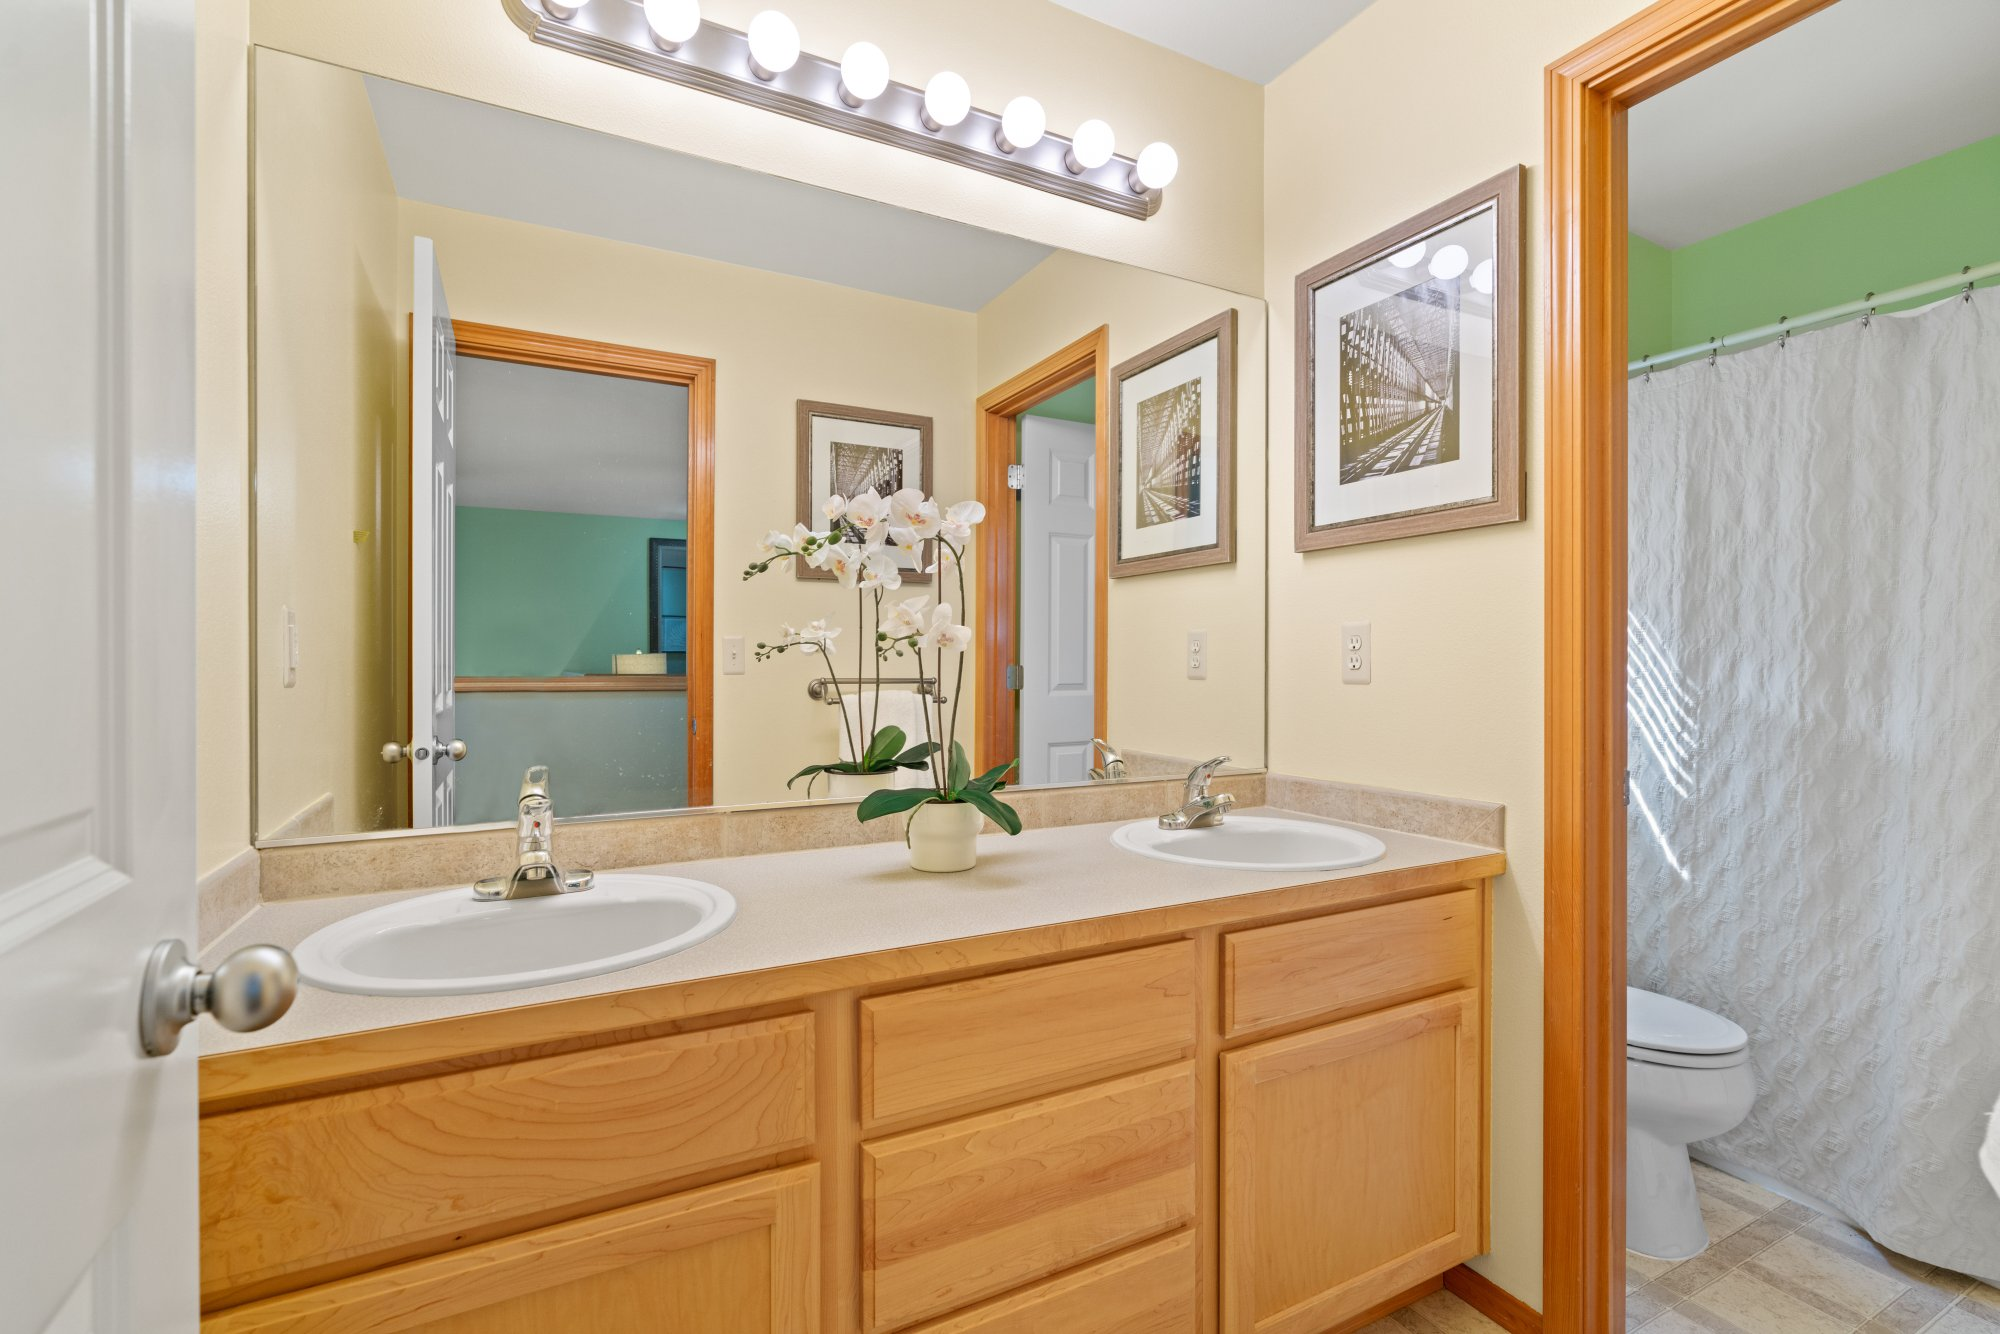 029-2946Northeast178thStreet-LakeForestPark-WA-98155-SMALL